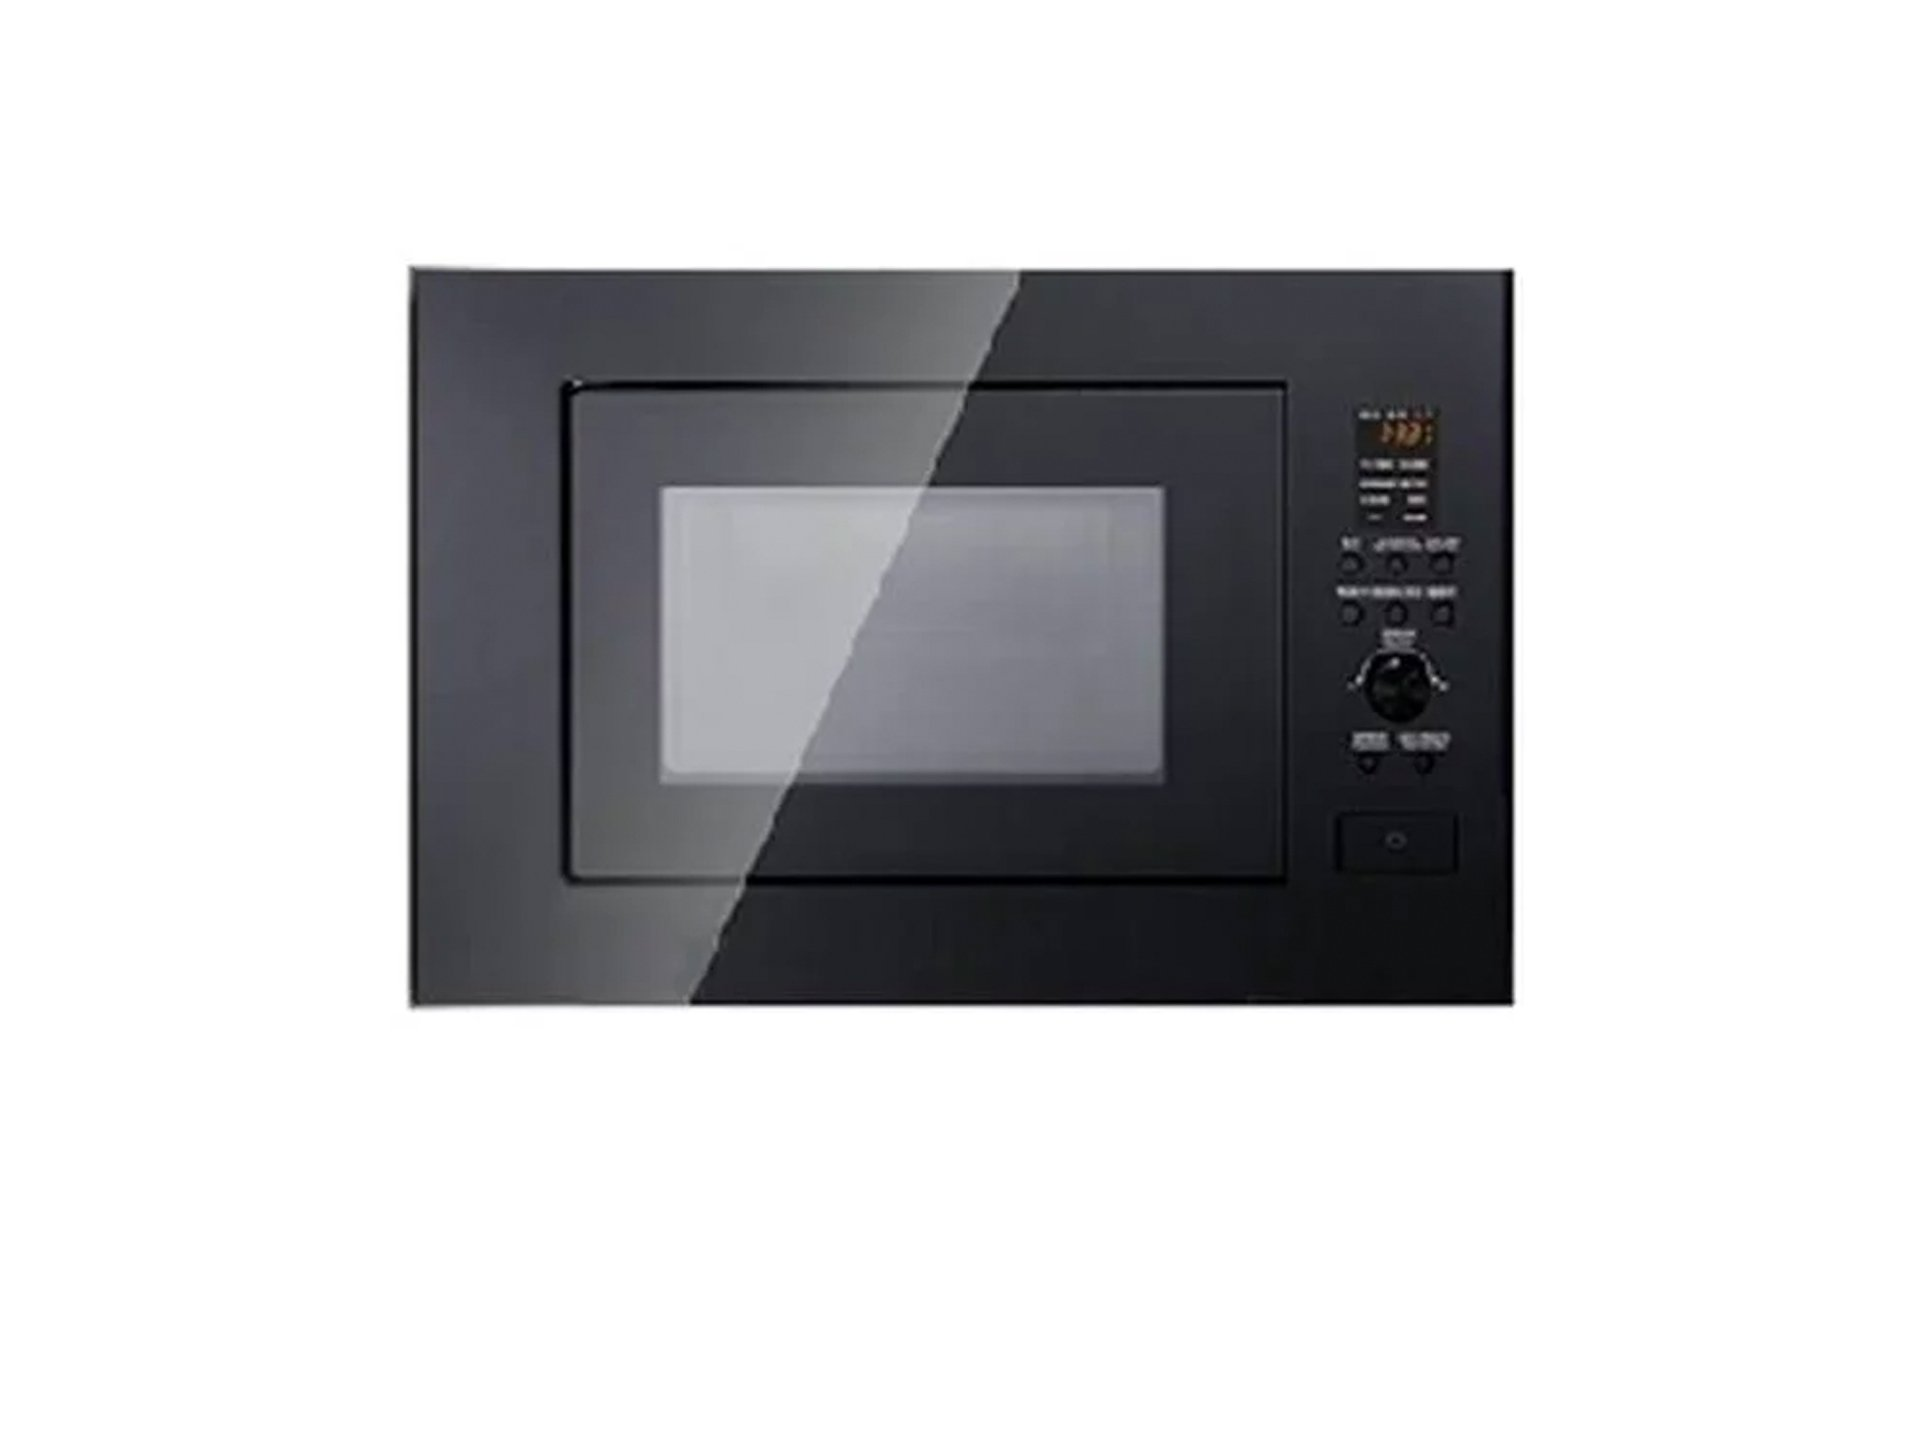 Yeobuild HomeStore Newmatic 23EPS Built-in Microwave Oven